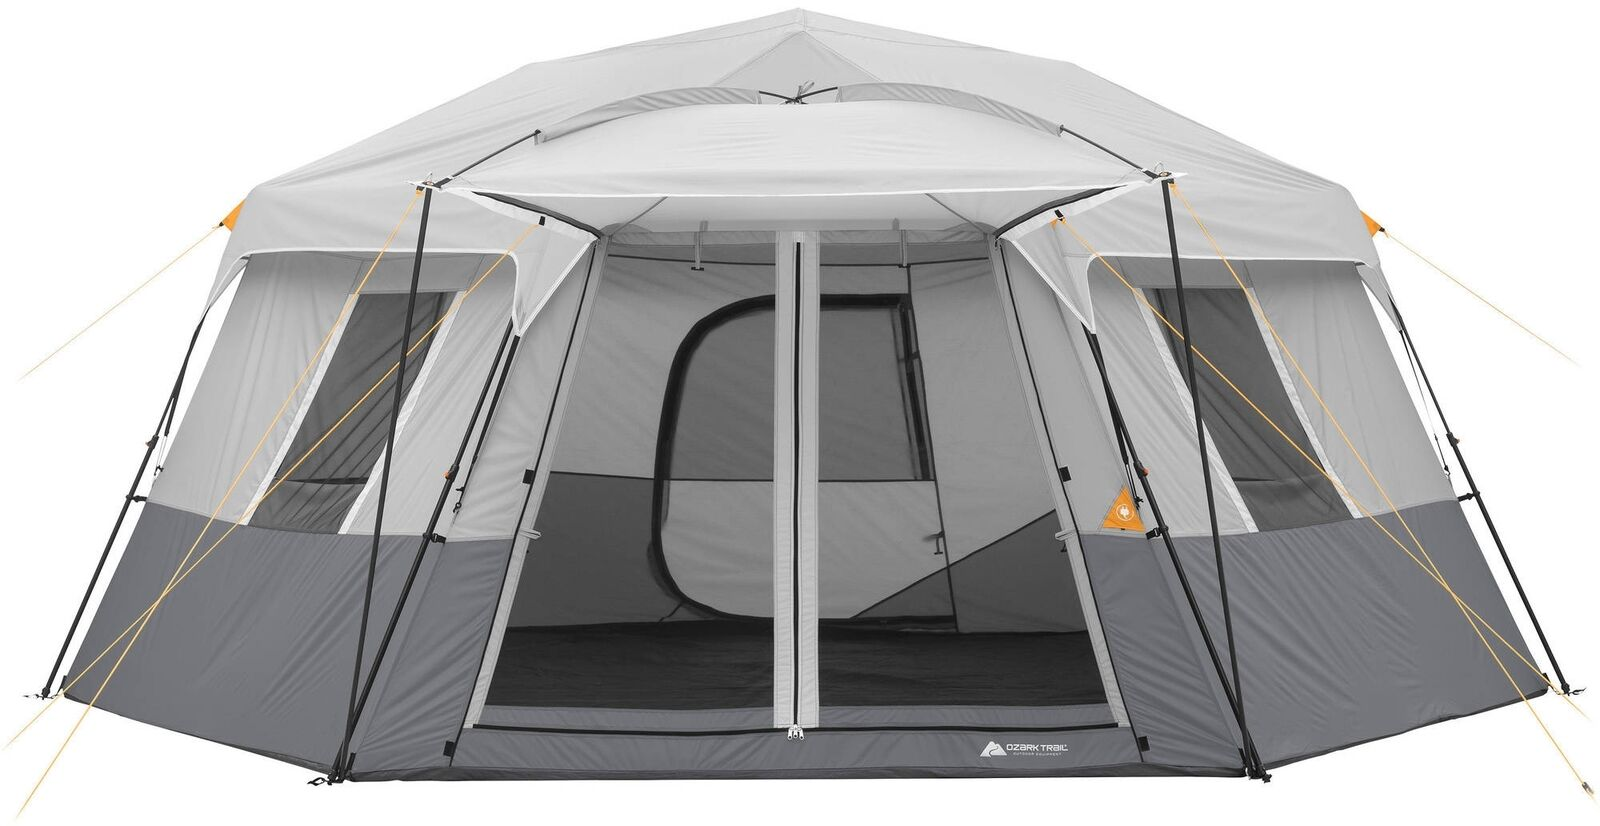 Ozark Trail 17 x 15 Person Instant Hexagon Cabin Tent, Sleeps 11 Hunting